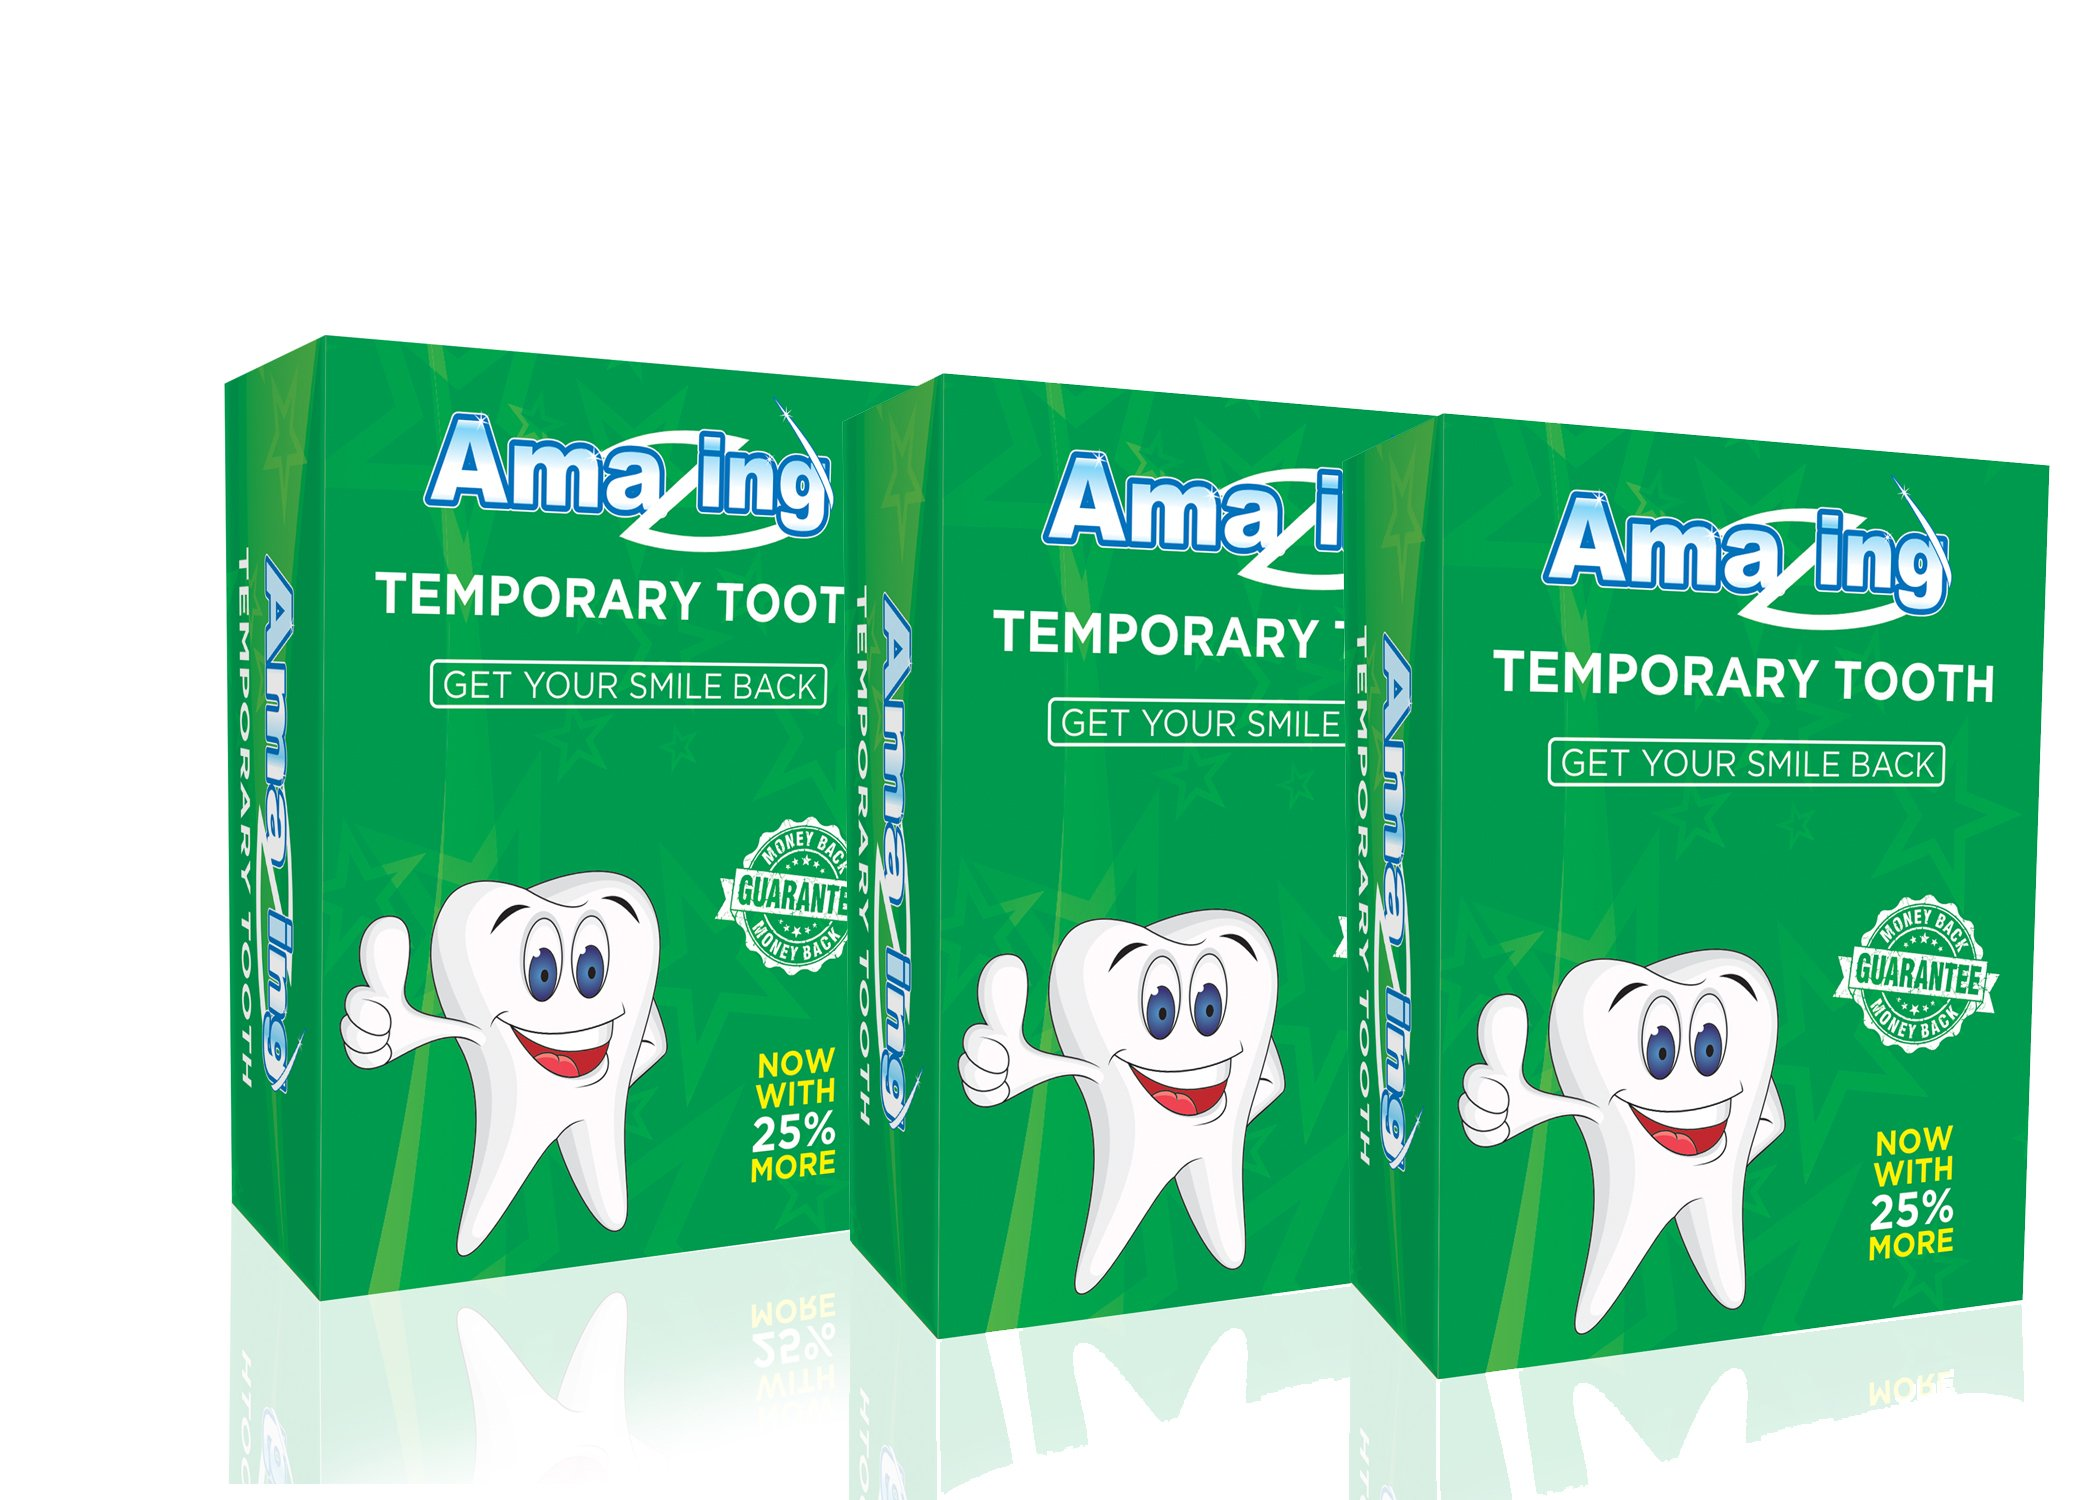 Amazing Temporary Missing Tooth Kit 3 Pack Replacement Temp Dental 25% more than others by Amazing Temporary Tooth